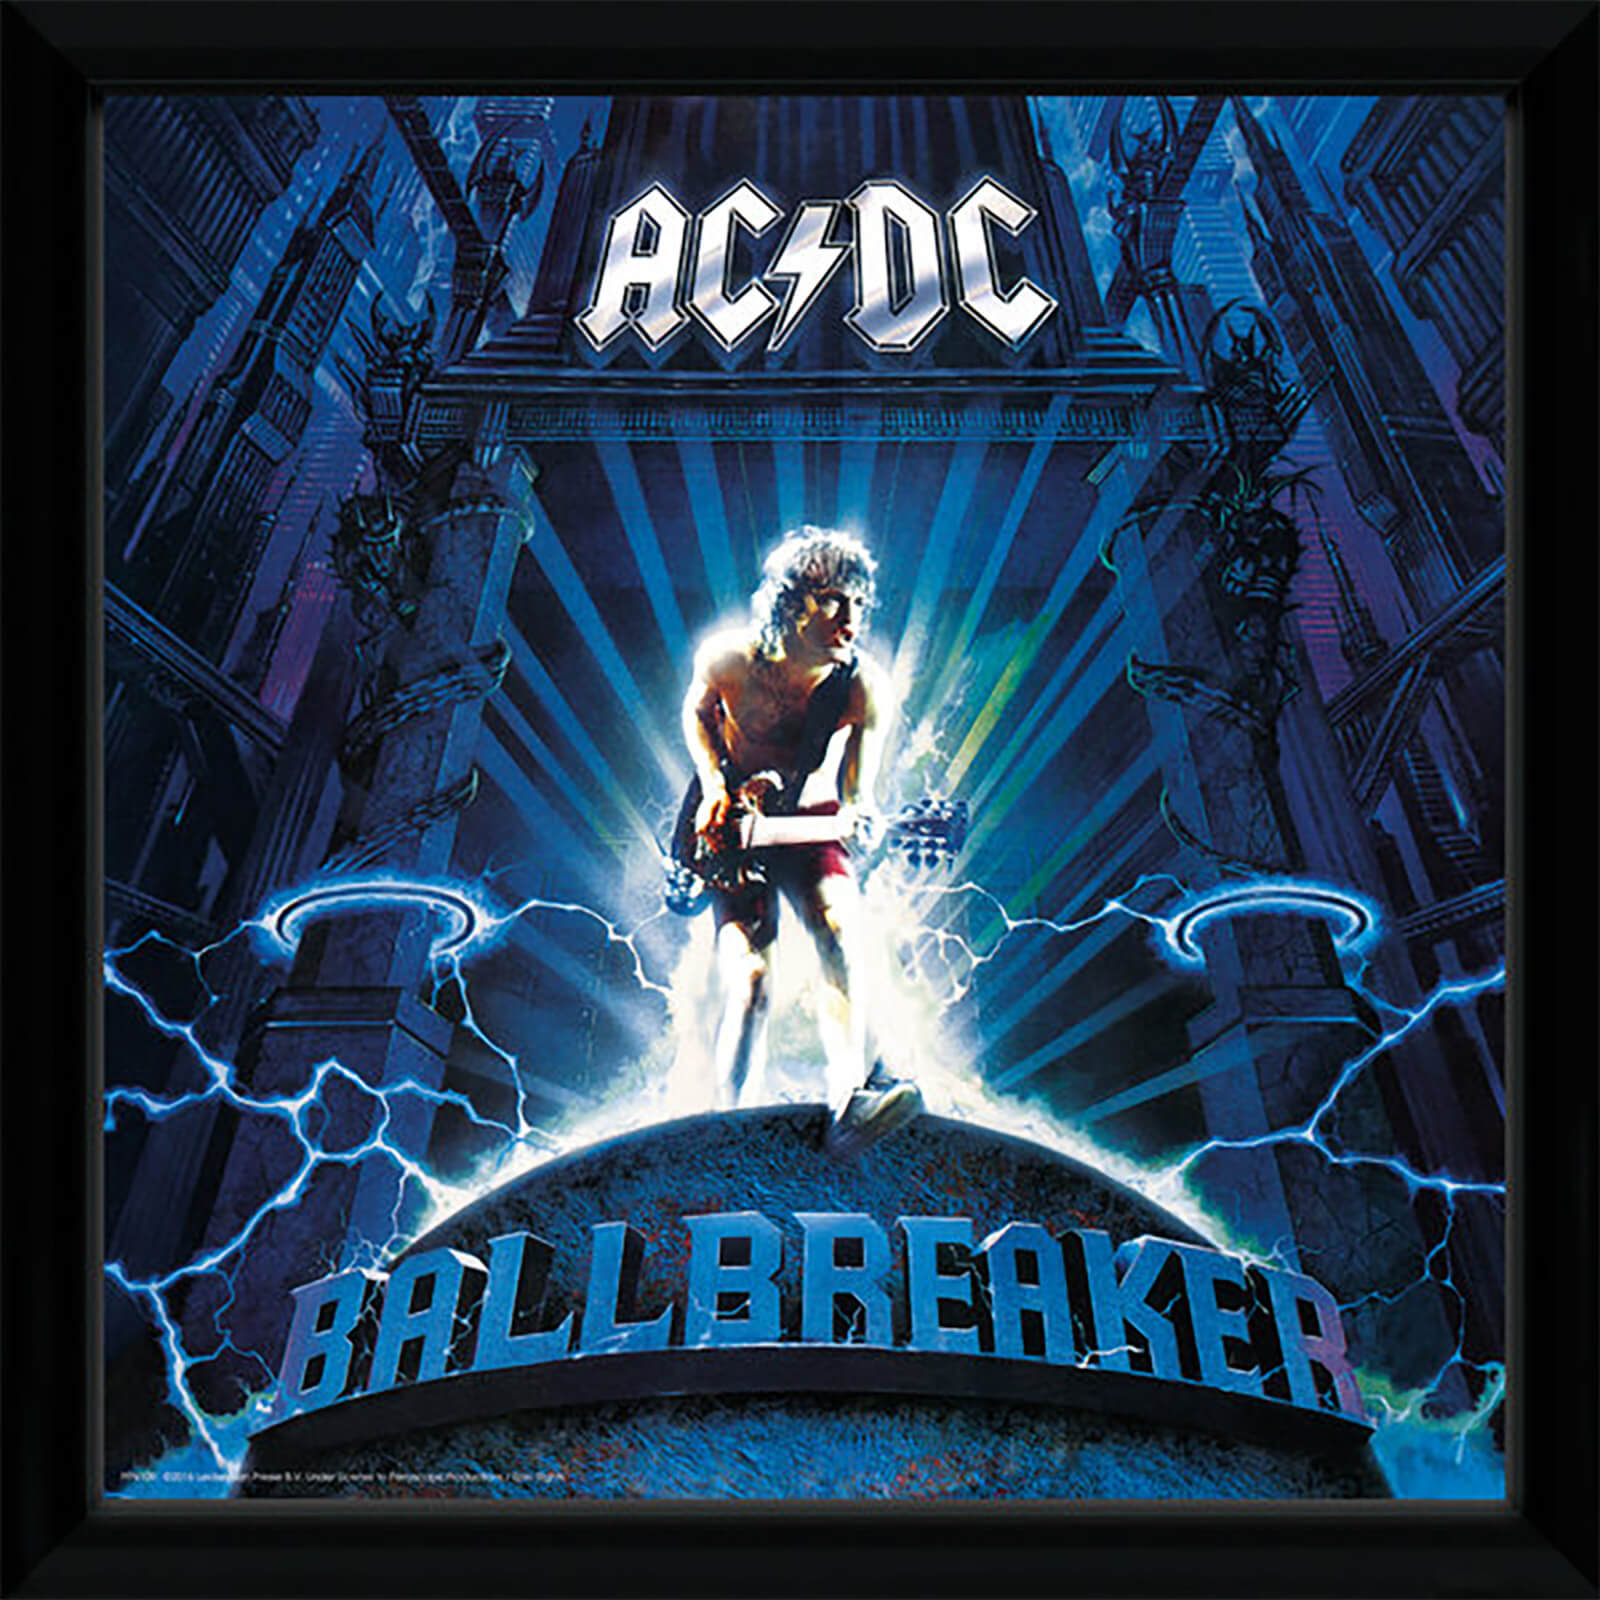 AC/DC Ballbreaker - 12 x 12 Inches Framed Album Print